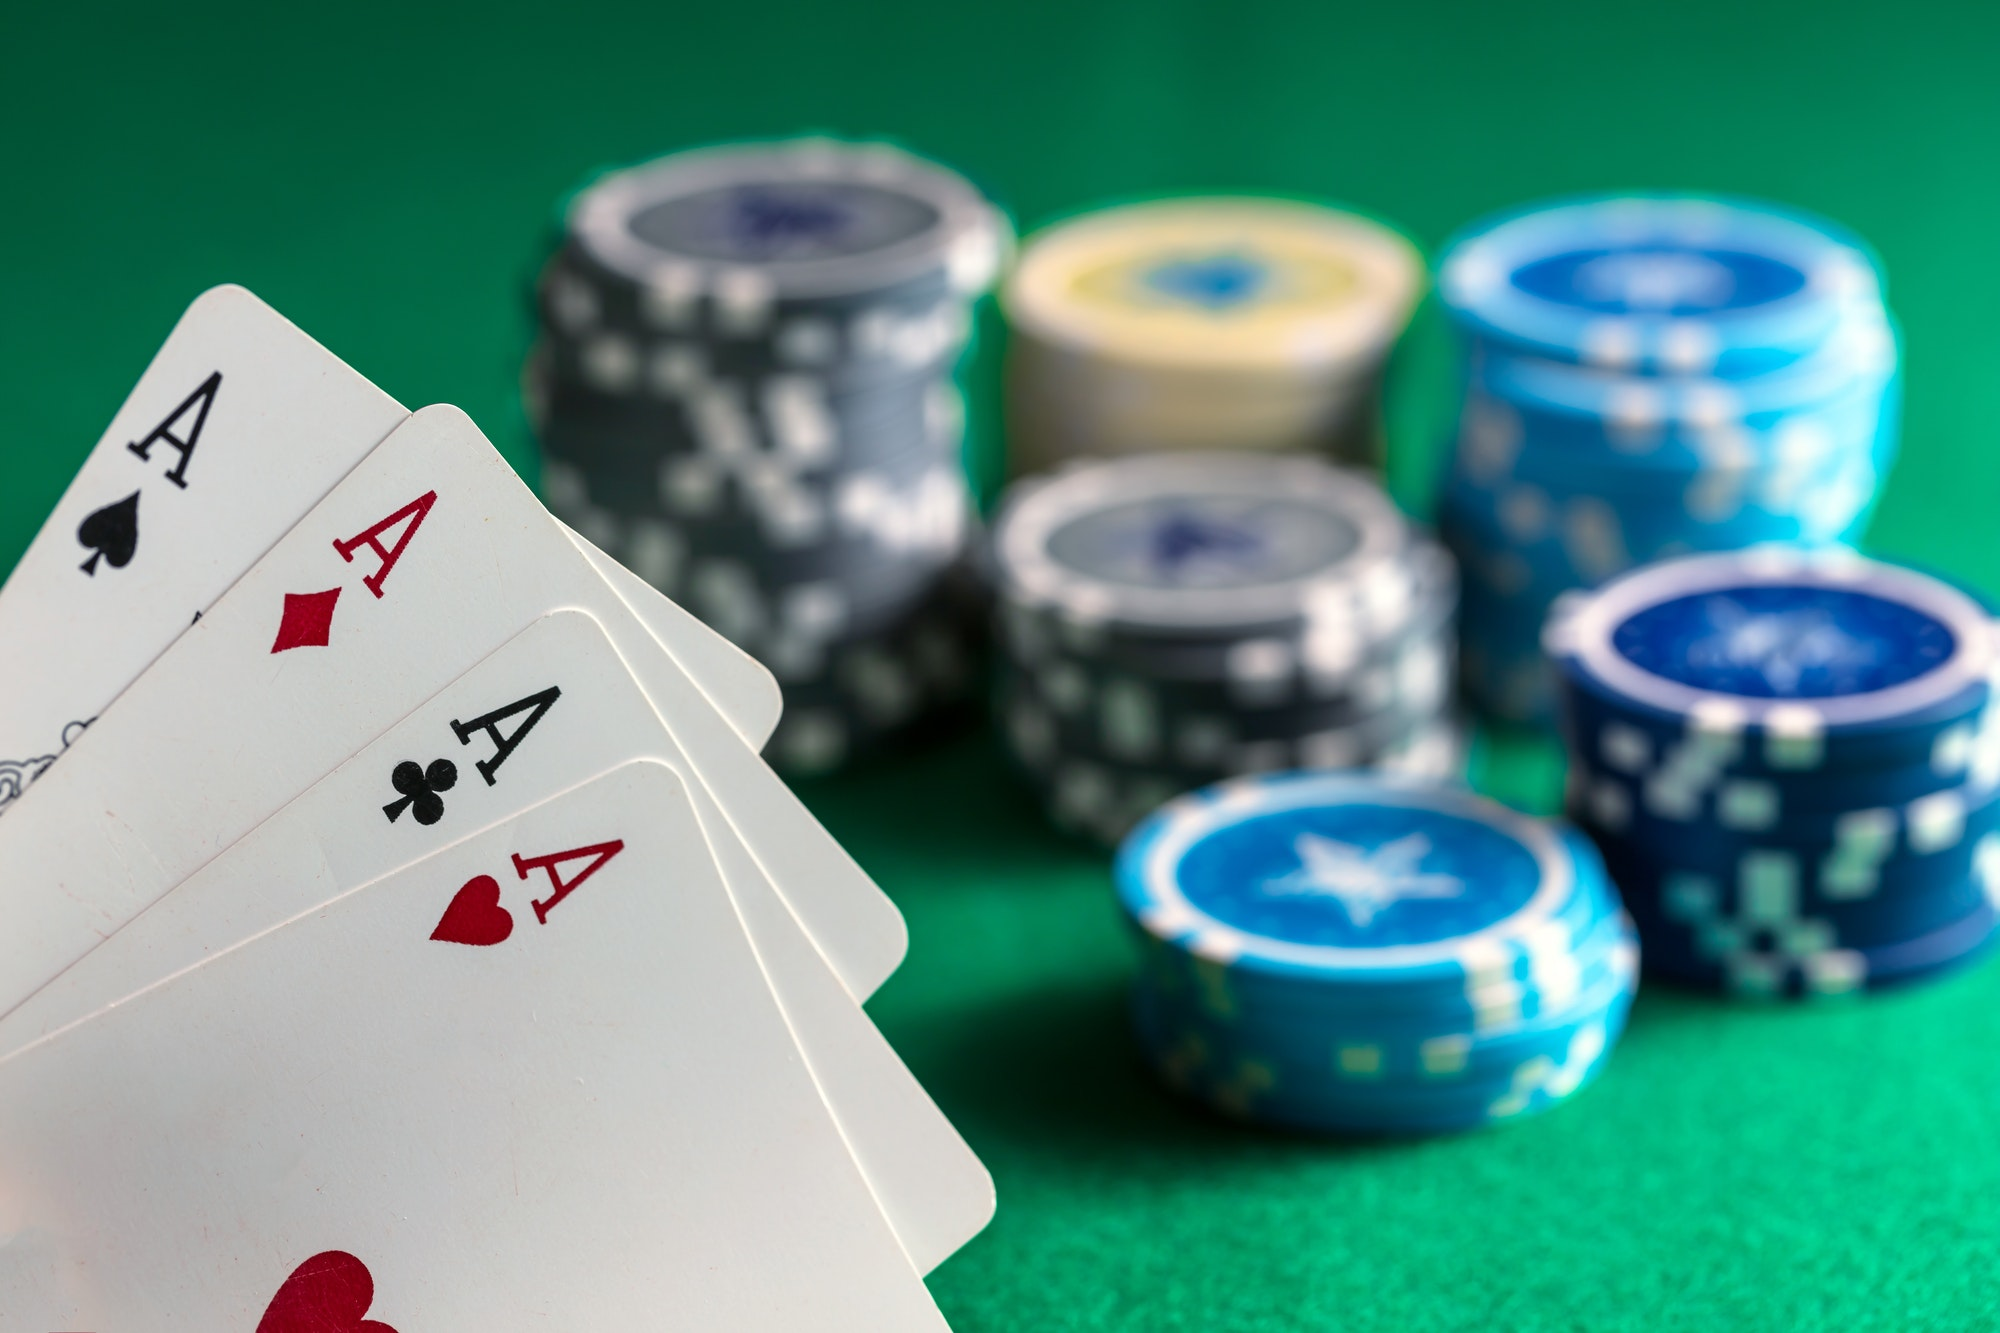 Ideal Online Casinos : The Top Gambling Sites Rated & Reviewed